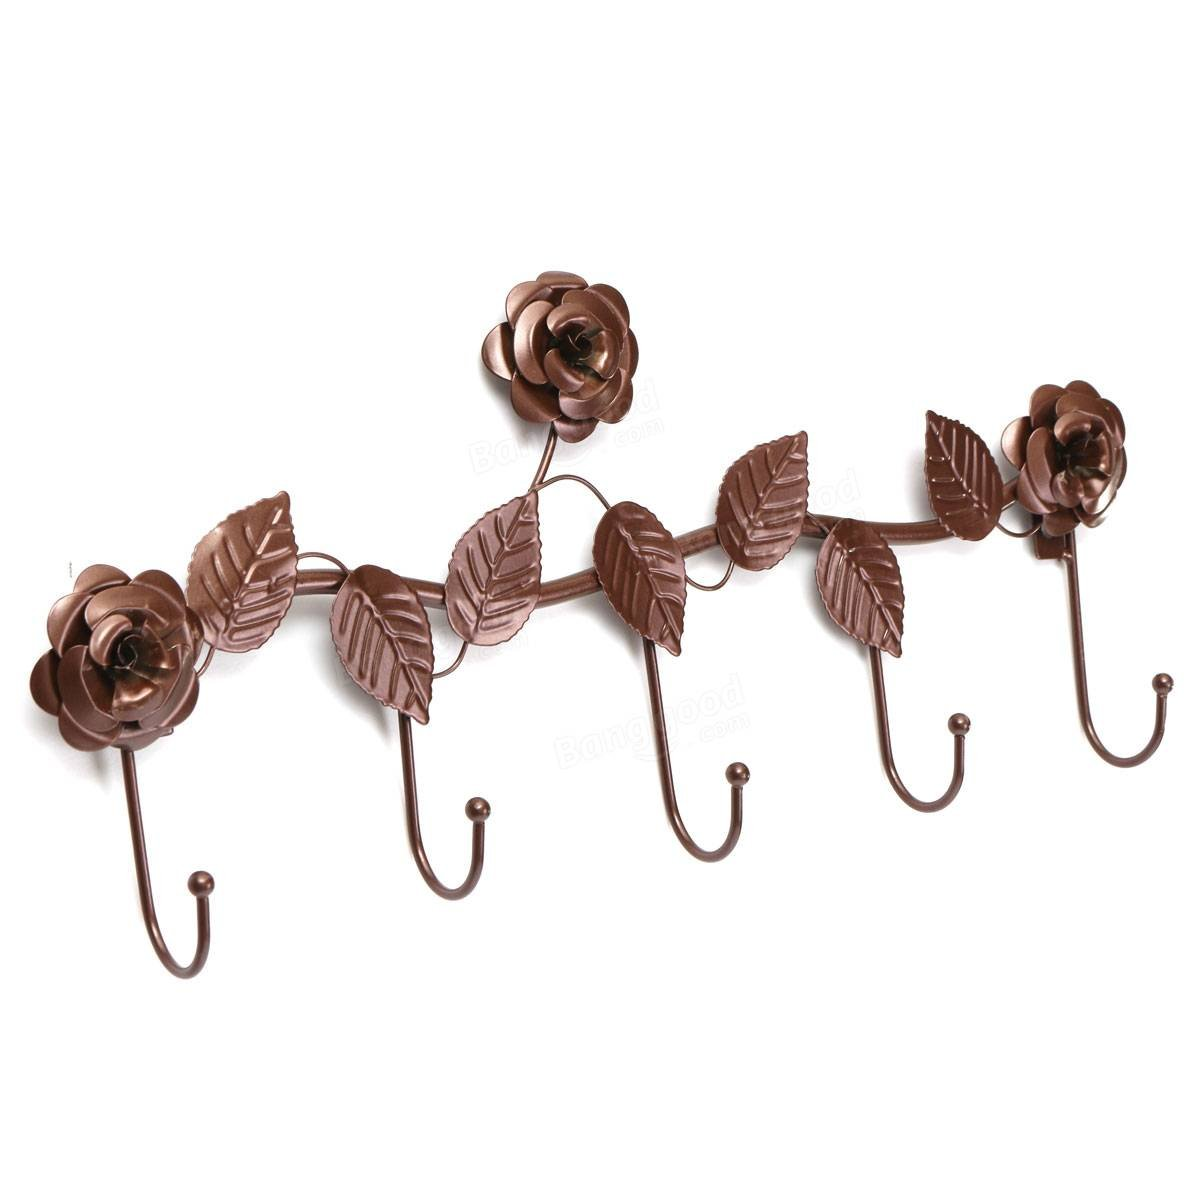 Bathroom Storage & Organisation Robe Hooks - 5 Hooks Wall Hanger Bathroom Flowers Leaves Metal Door Hook Clothes Towel Rack - Bronze -1x Wall hangerDetails pictures: